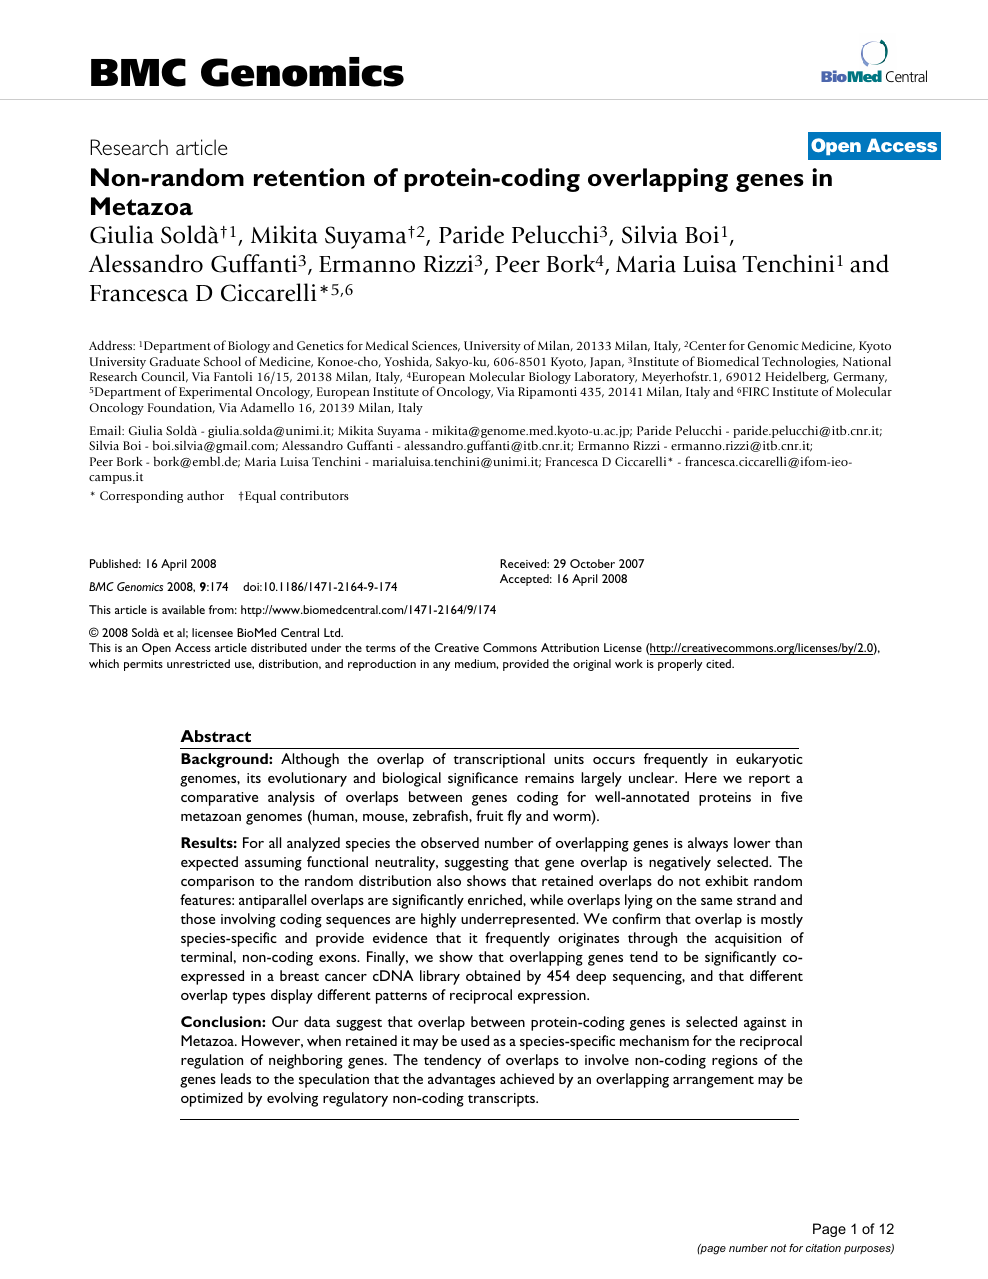 Non-random retention of protein-coding overlapping genes in Metazoa